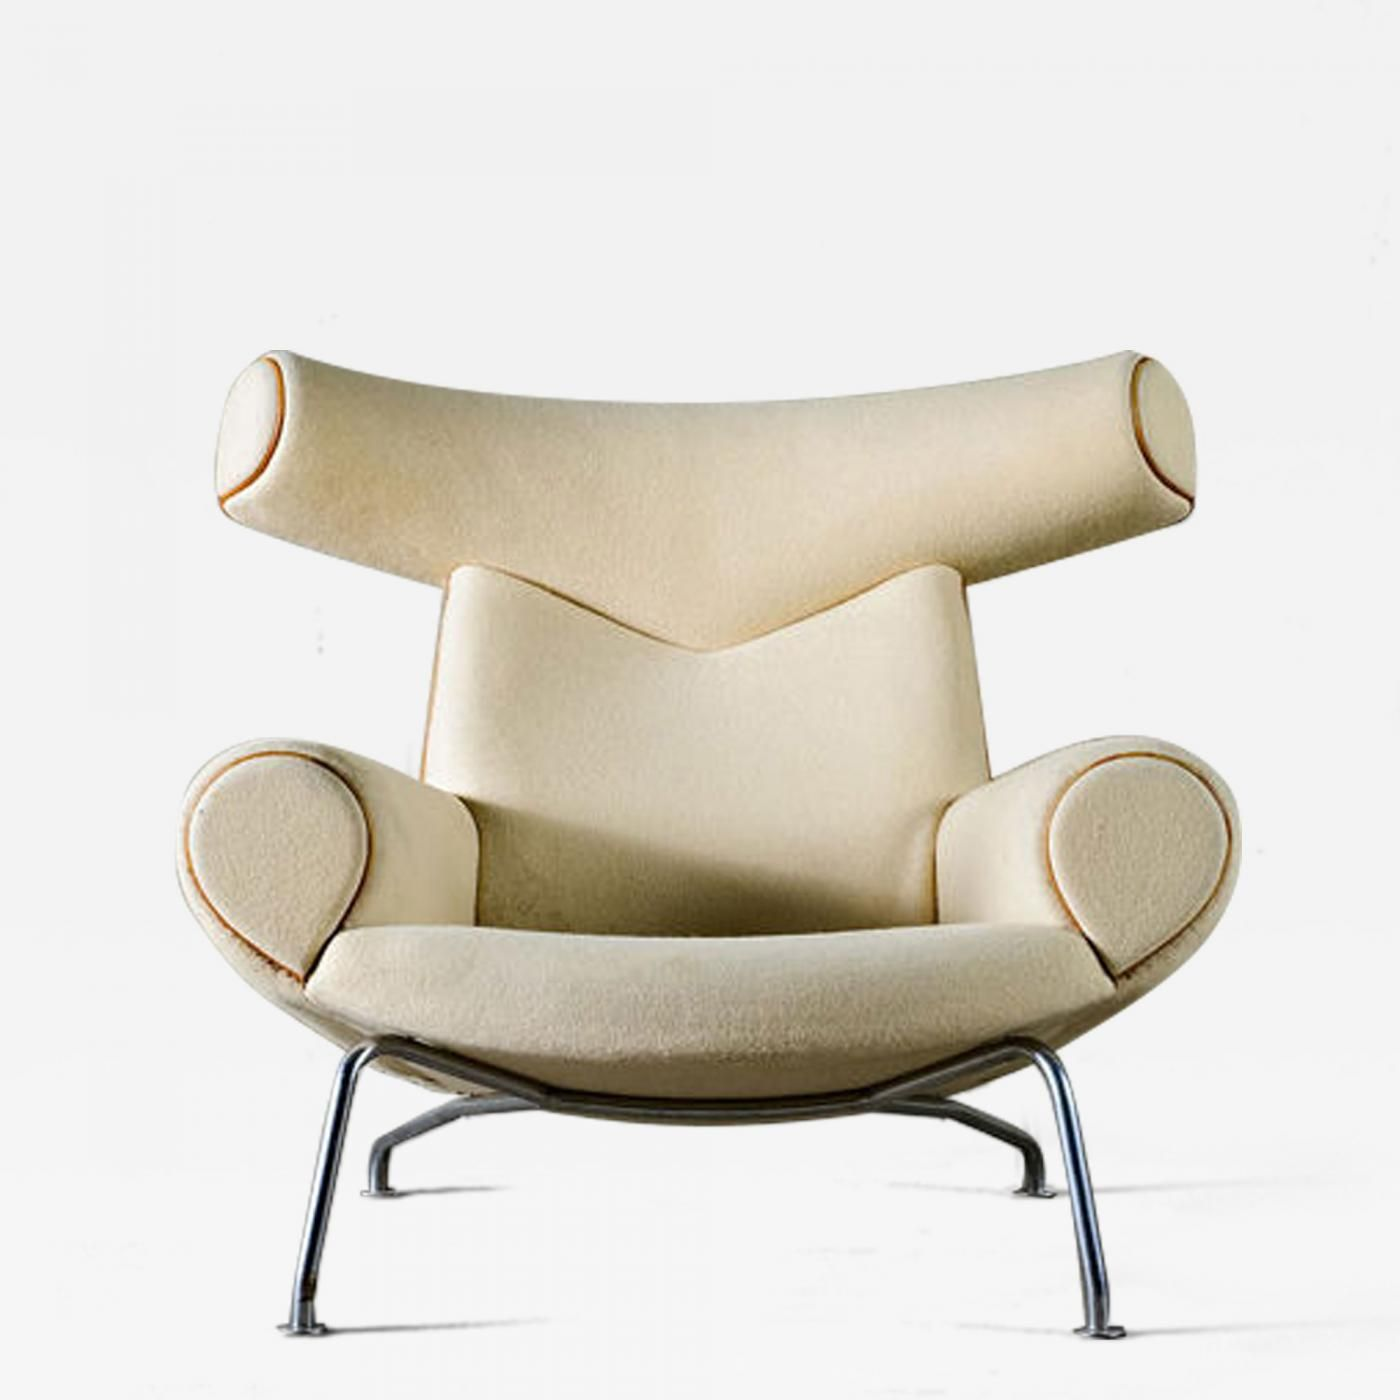 """Hans Wegner - Hans Wegner """"Ox"""" Chair in White Mohair offered by JF Chen on InCollect"""